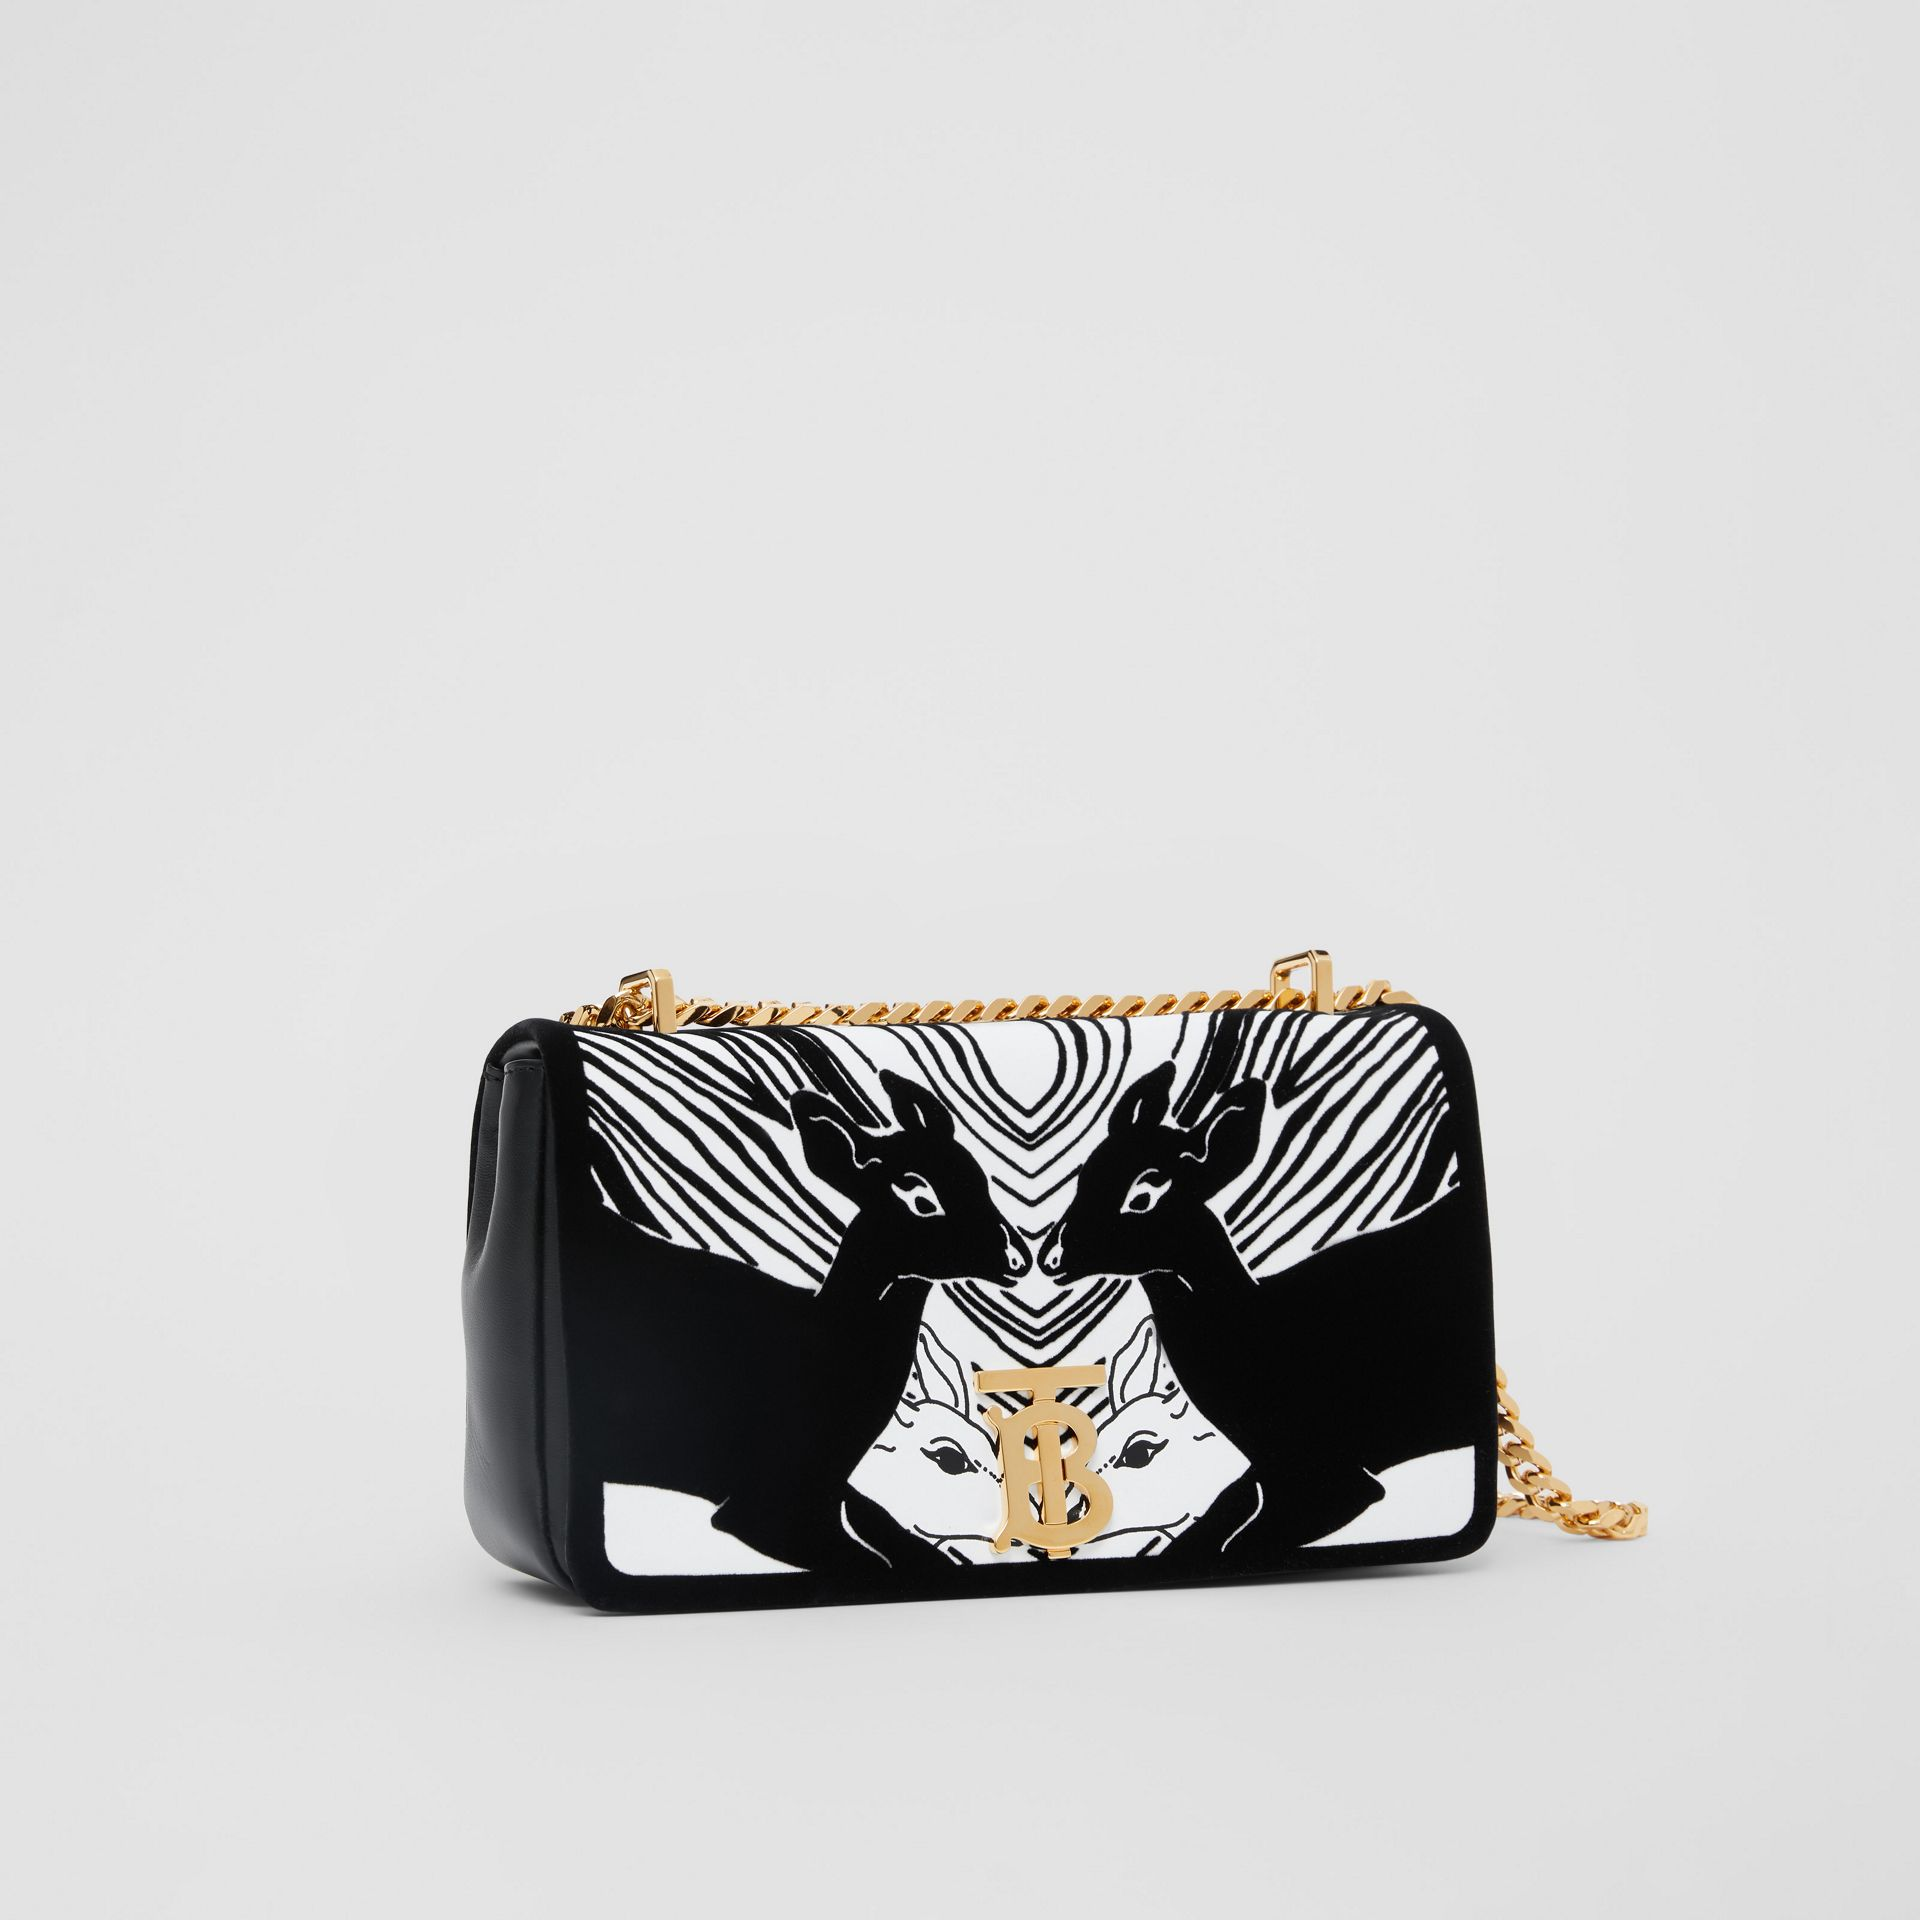 Small Deer Flock Leather Lola Bag in Black/white - Women | Burberry - gallery image 6